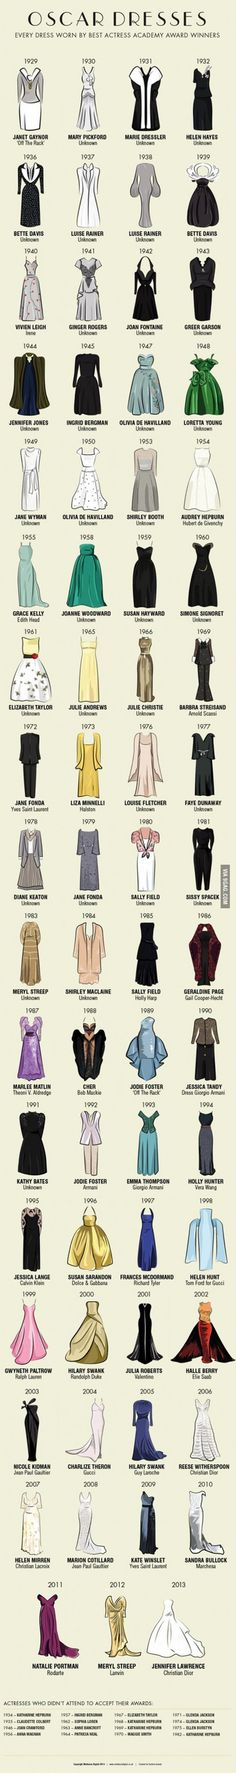 Every Dress Worn by Best Actress Oscar Winners, 1929-2013